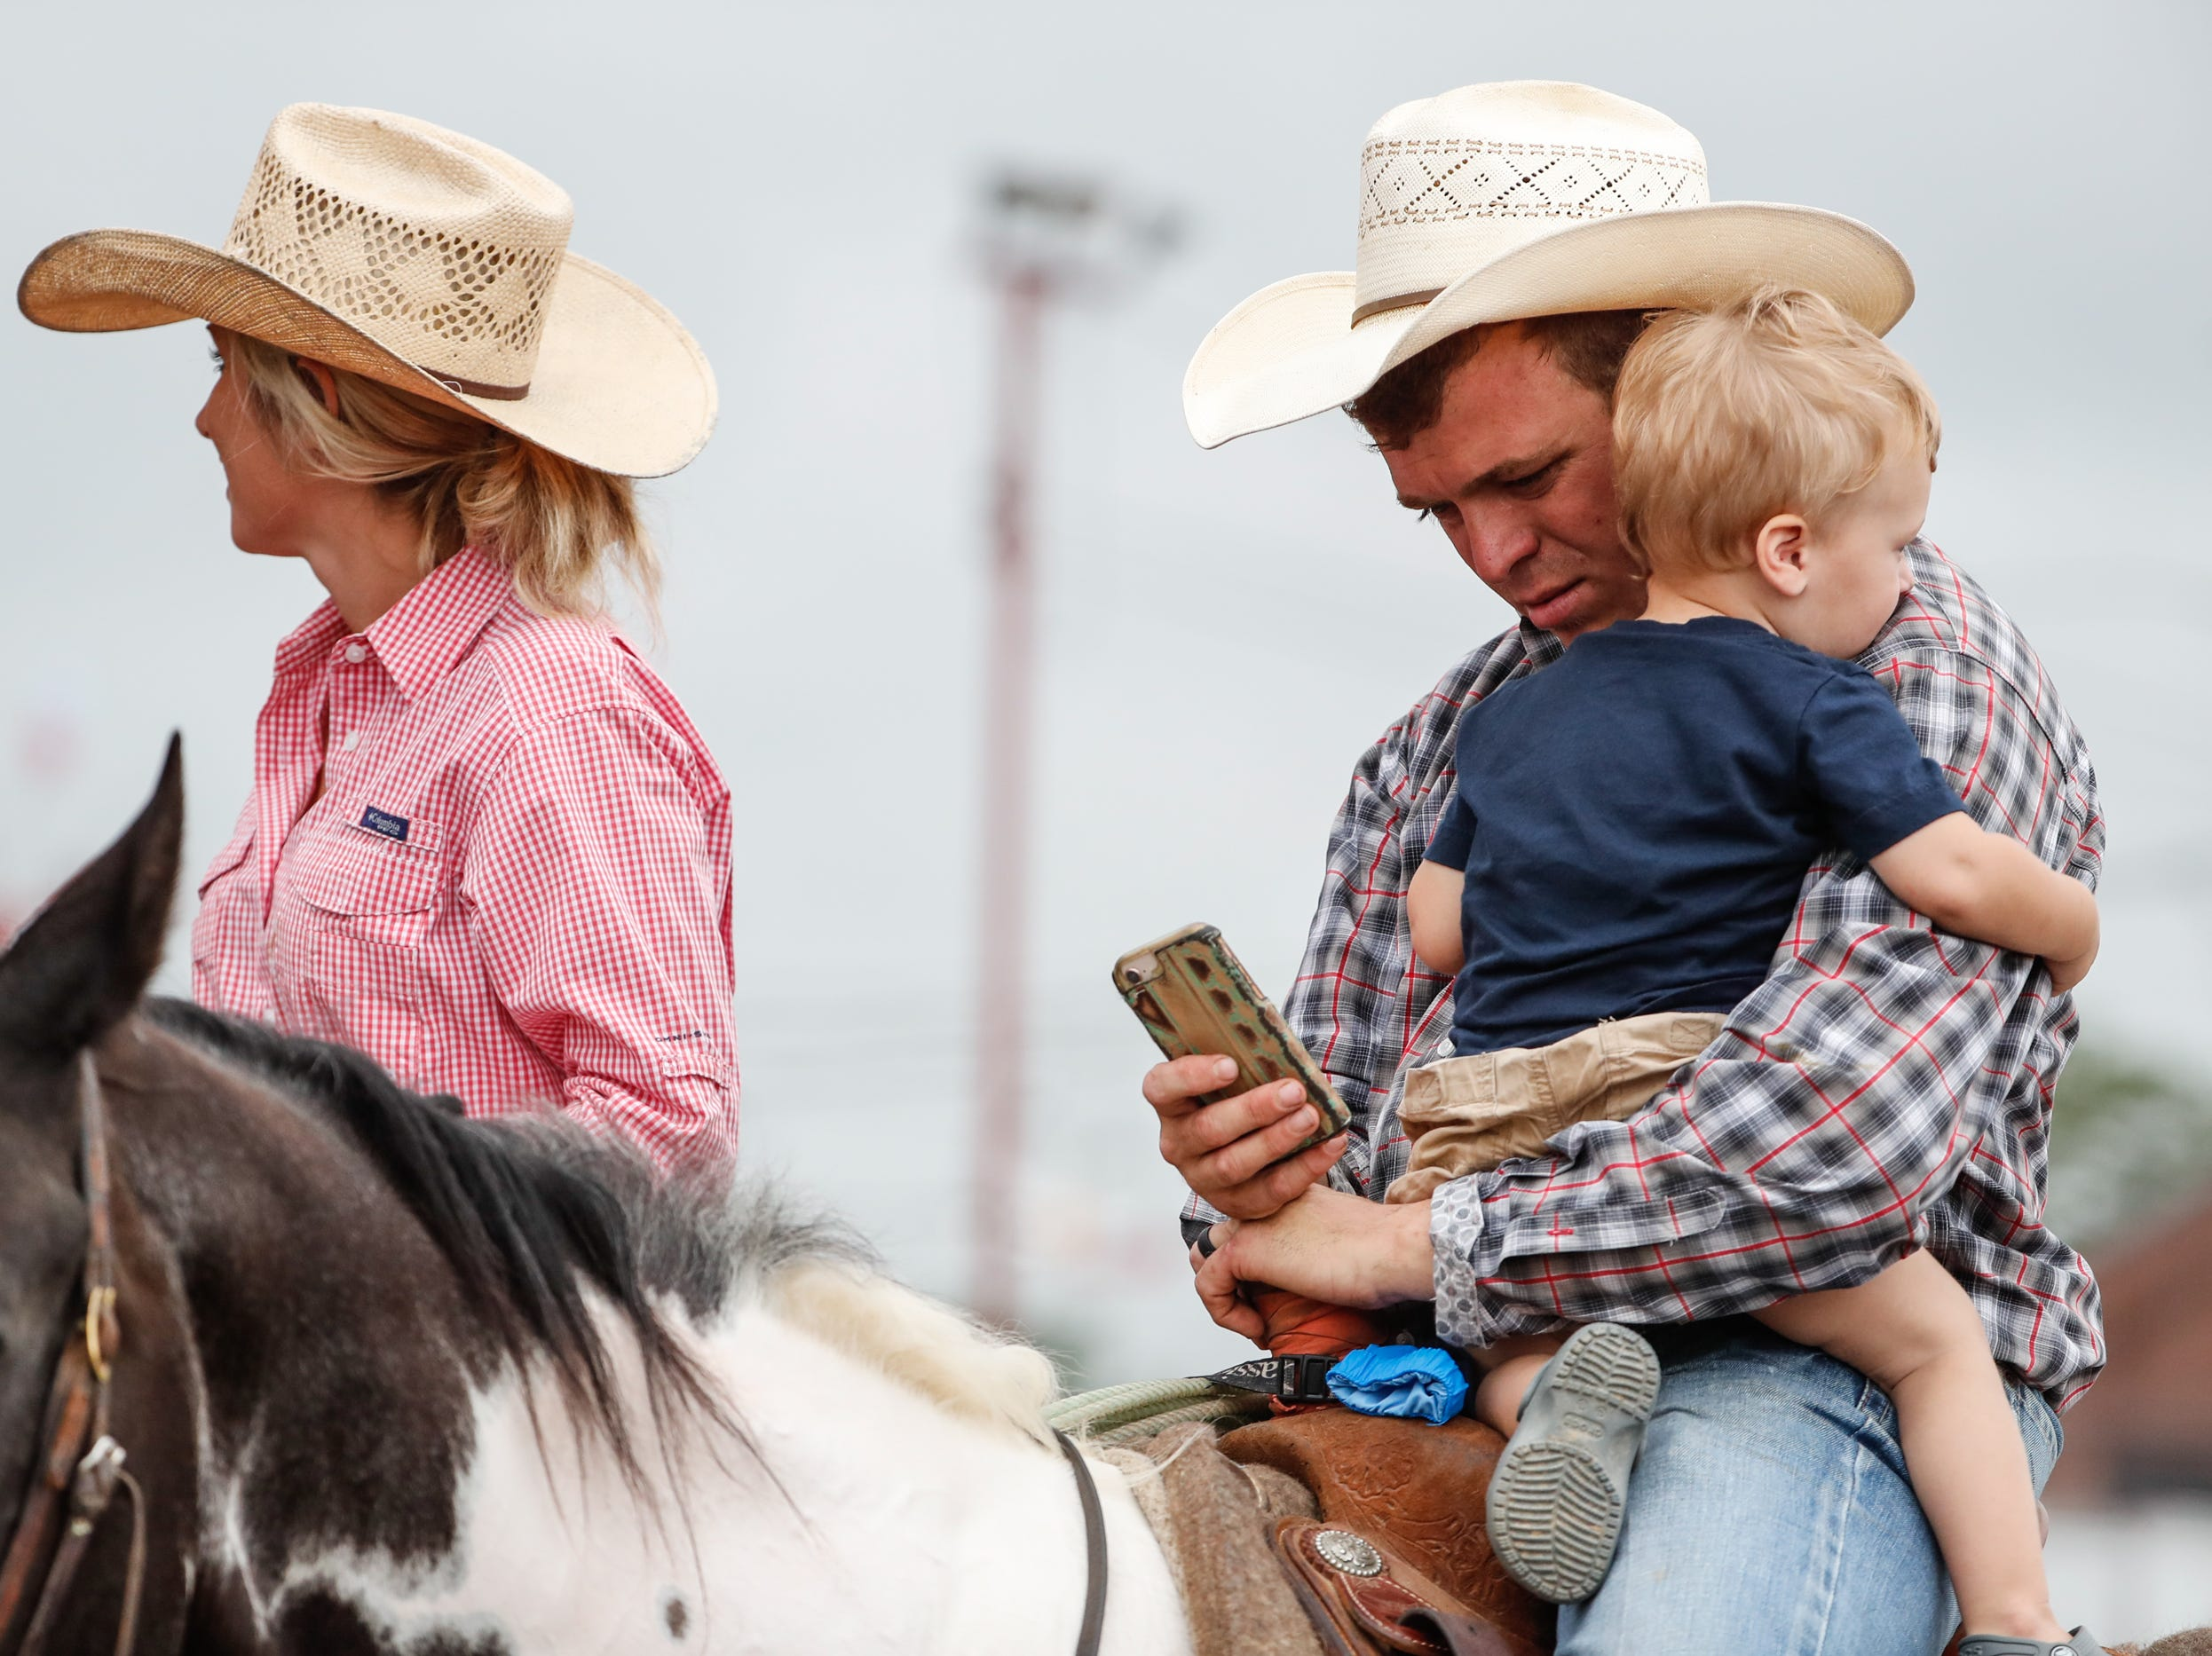 Cowboy Zach Kilgus holds his son Slate next to his wife Alicia Kilgus during the Championship Rodeo at the Indiana State Fair on Wednesday, Aug. 15, 2018.